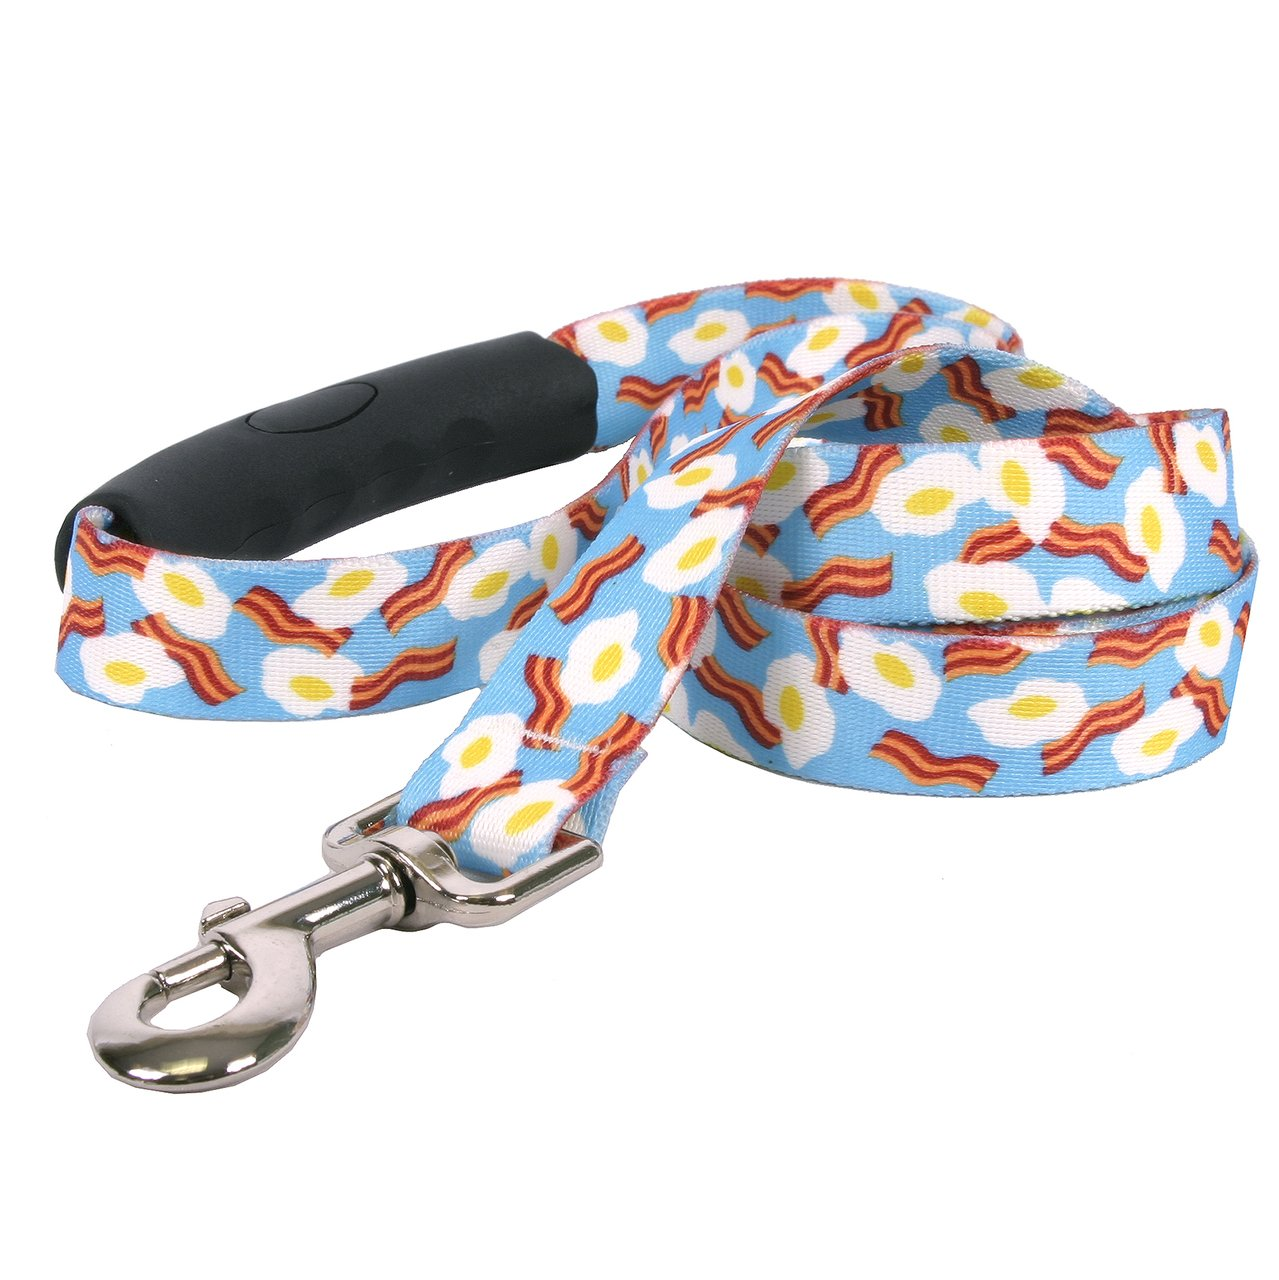 Yellow Dog Design Bacon and Eggs Ez-Grip Dog Leash with Comfort Handle 1'' Wide and 5' (60'') Long, Large